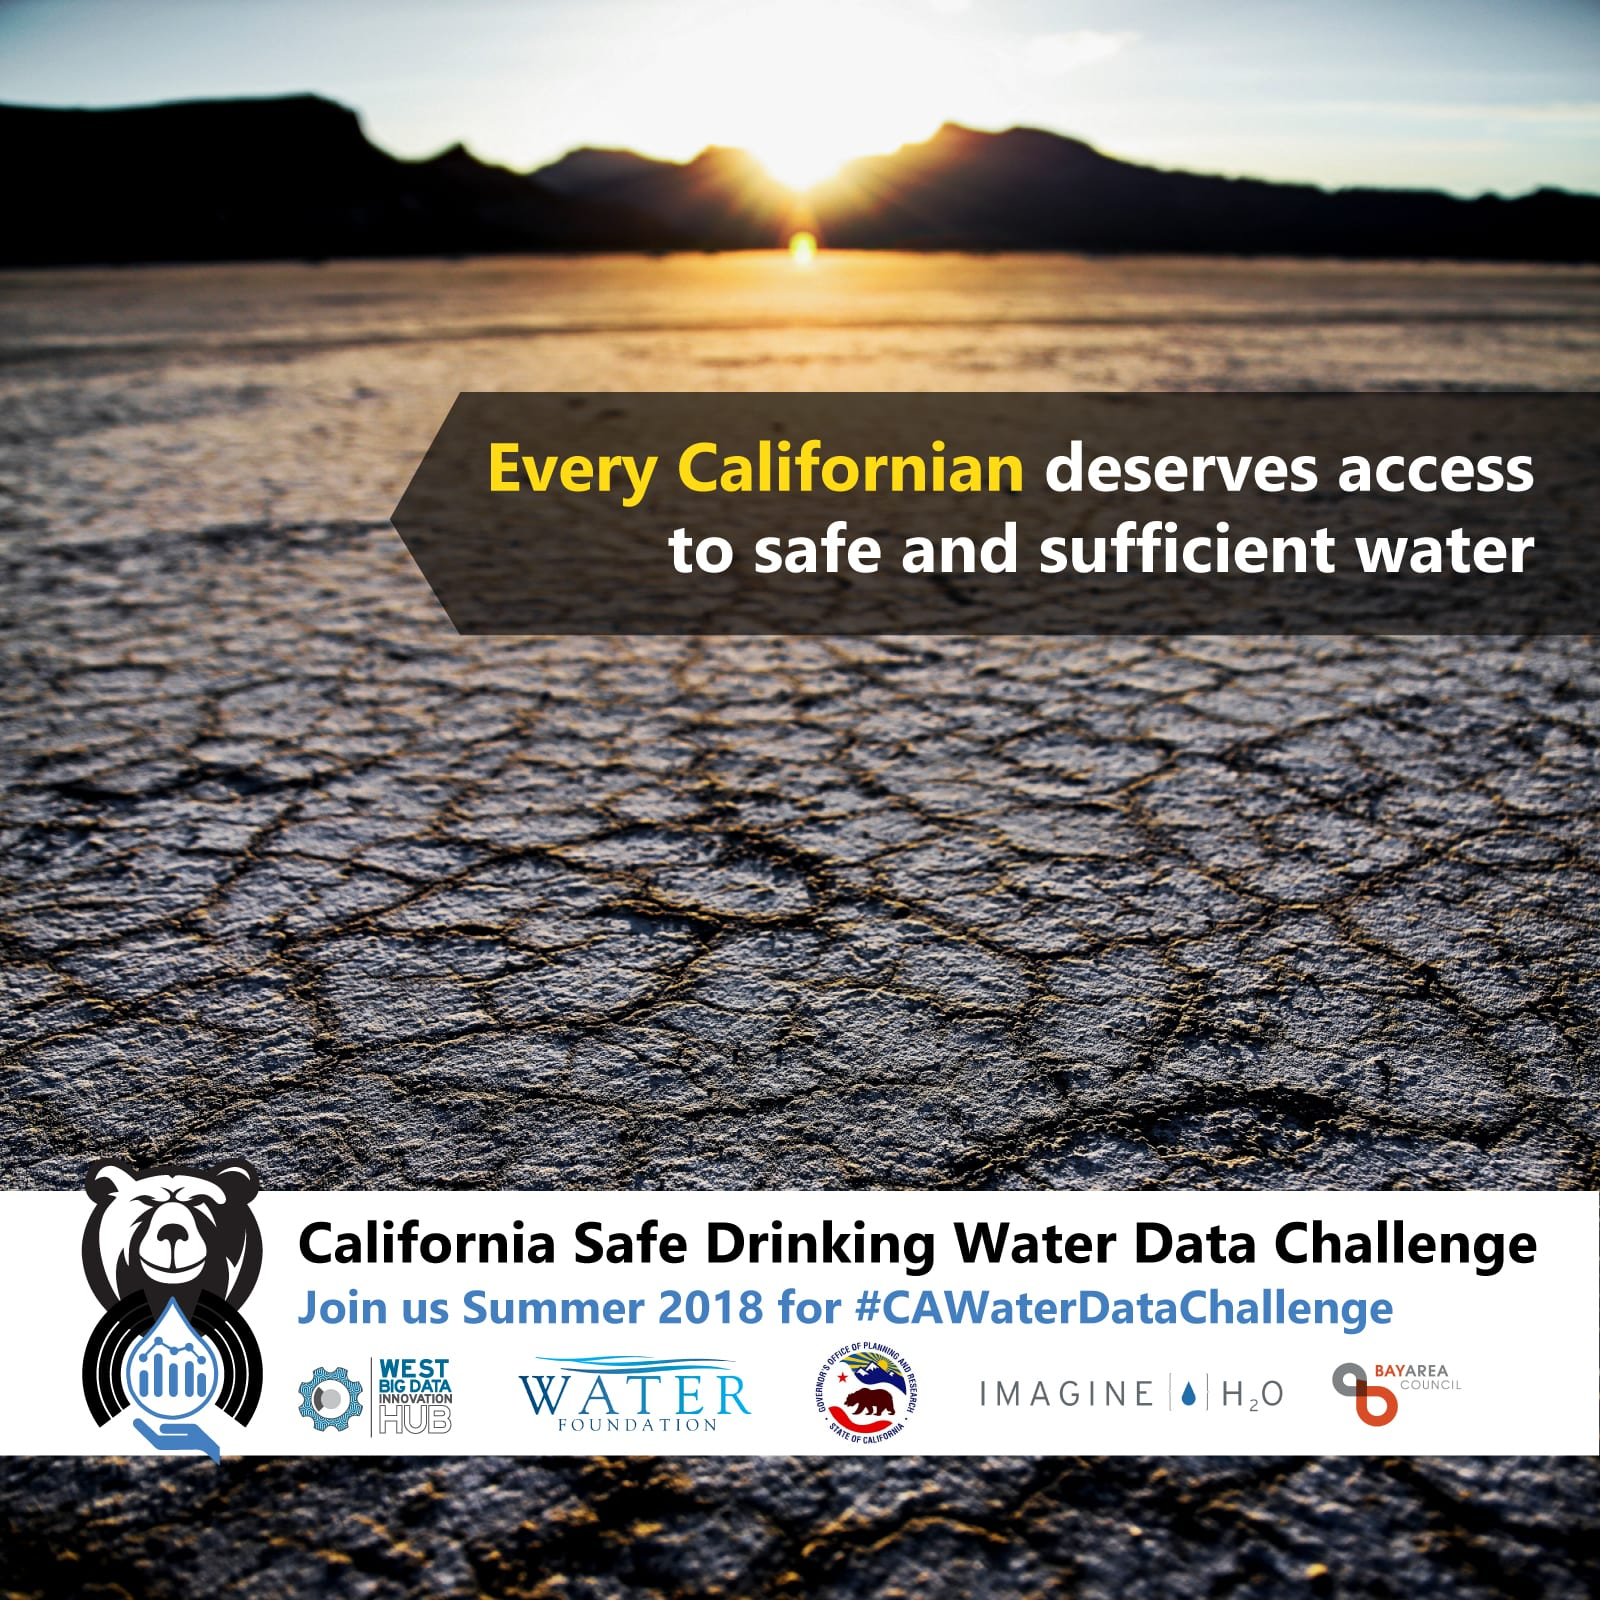 2018 California Safe Drinking Water Data Challenge